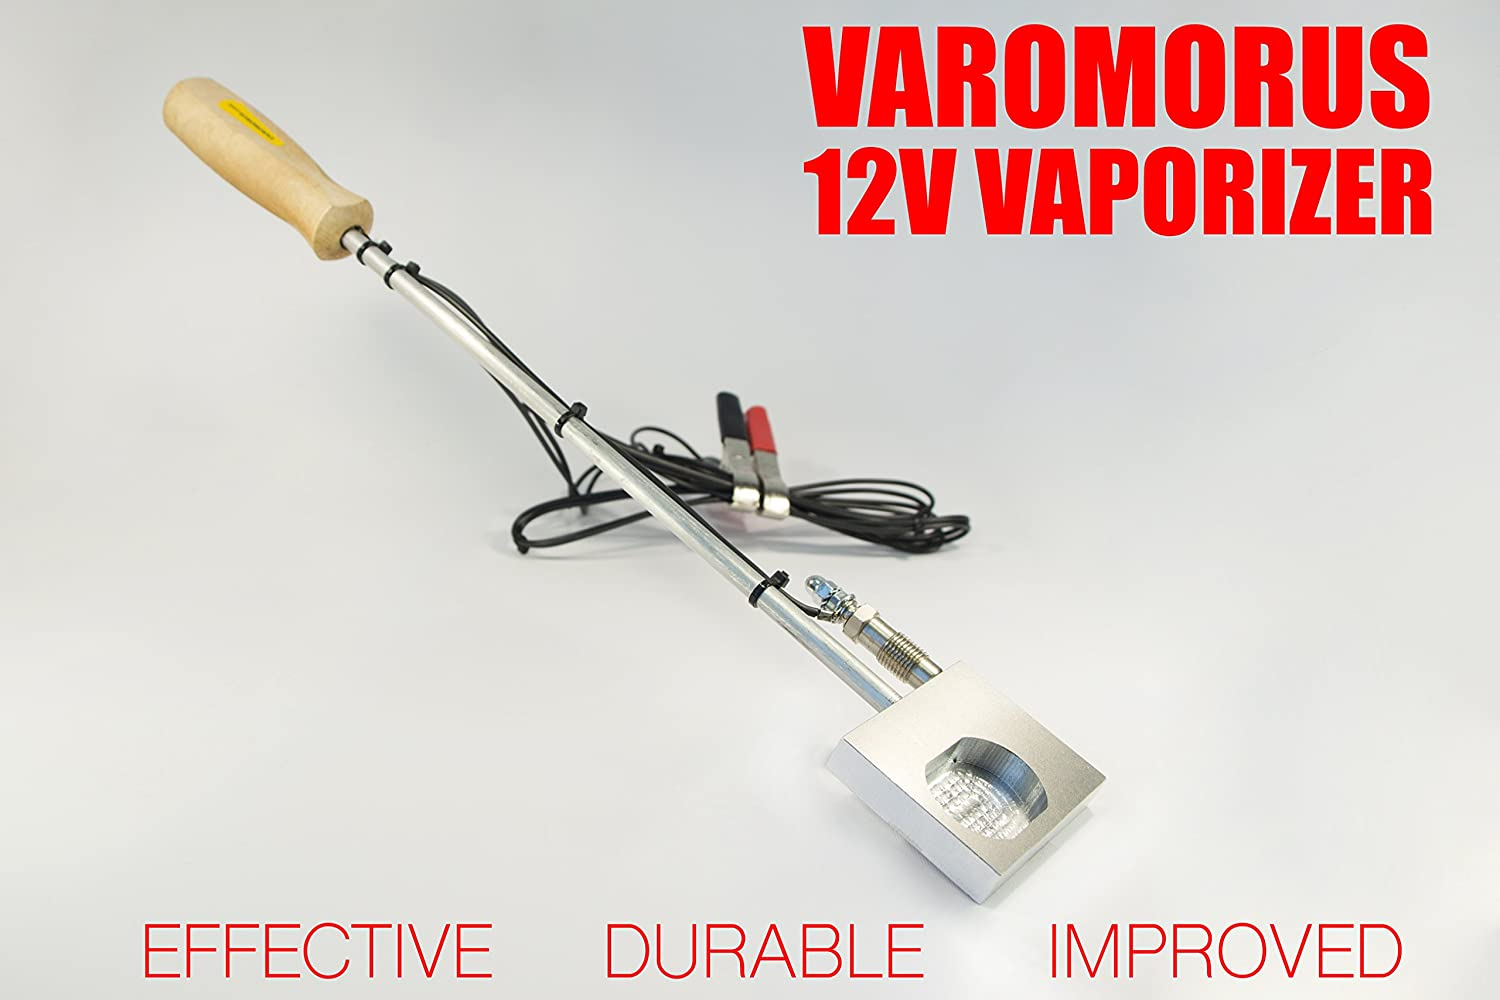 Varomorus DURABLE OXALIC ACID 12V VAPORIZER VARROA MITE TREATMENT